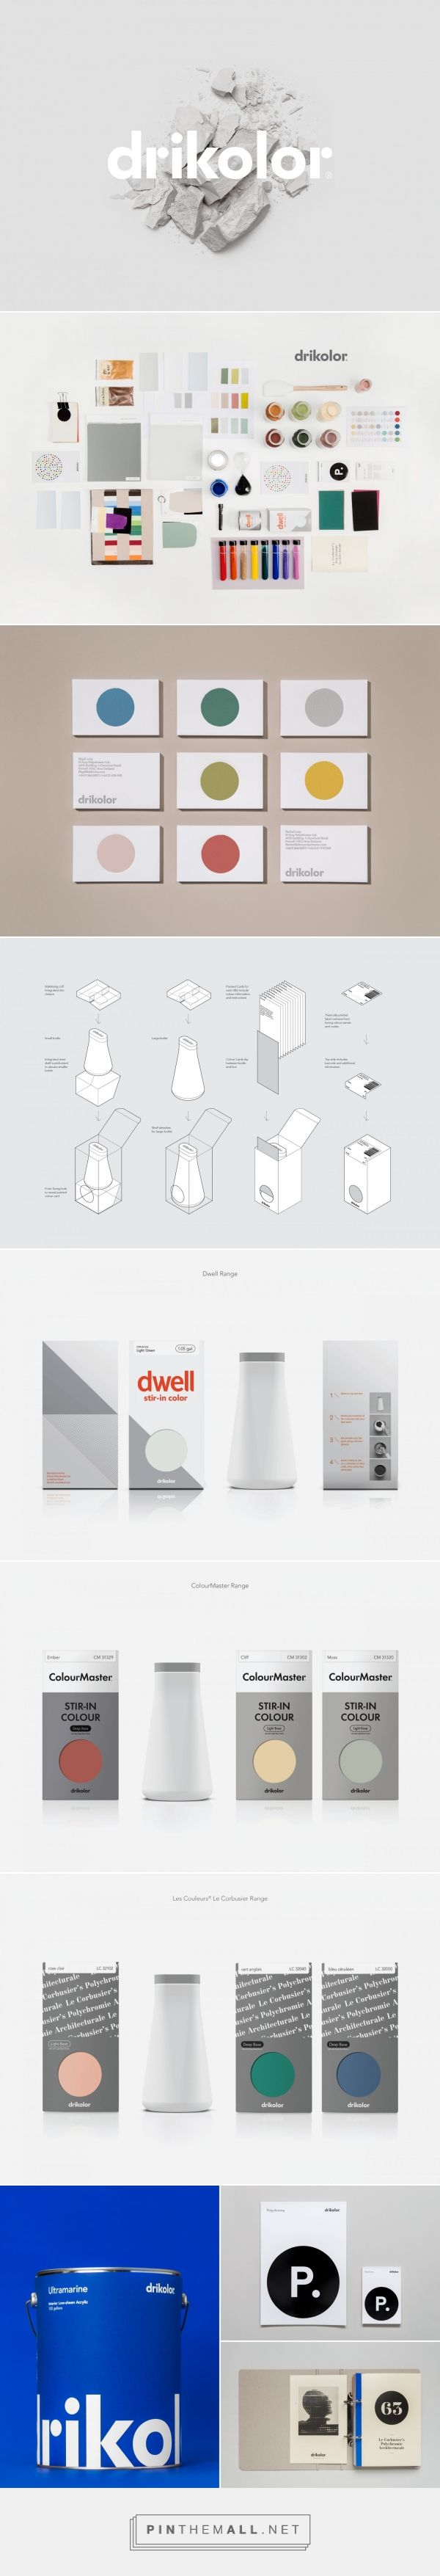 556 best packaging images on Pinterest